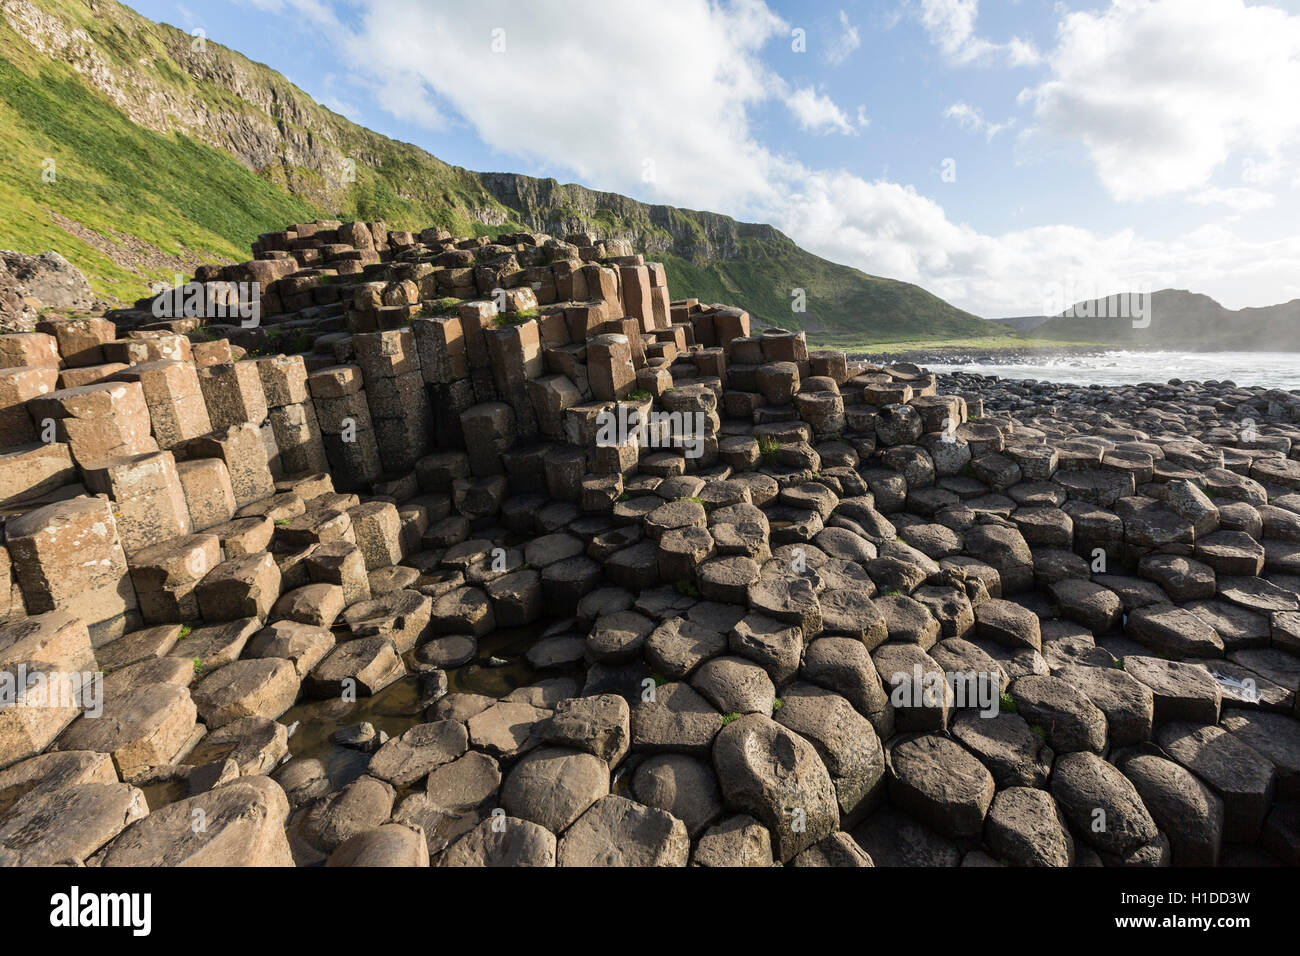 Port Ganny at Giant's Causeway, Bushmills, County Antrim, Northern Ireland, UK Stock Photo